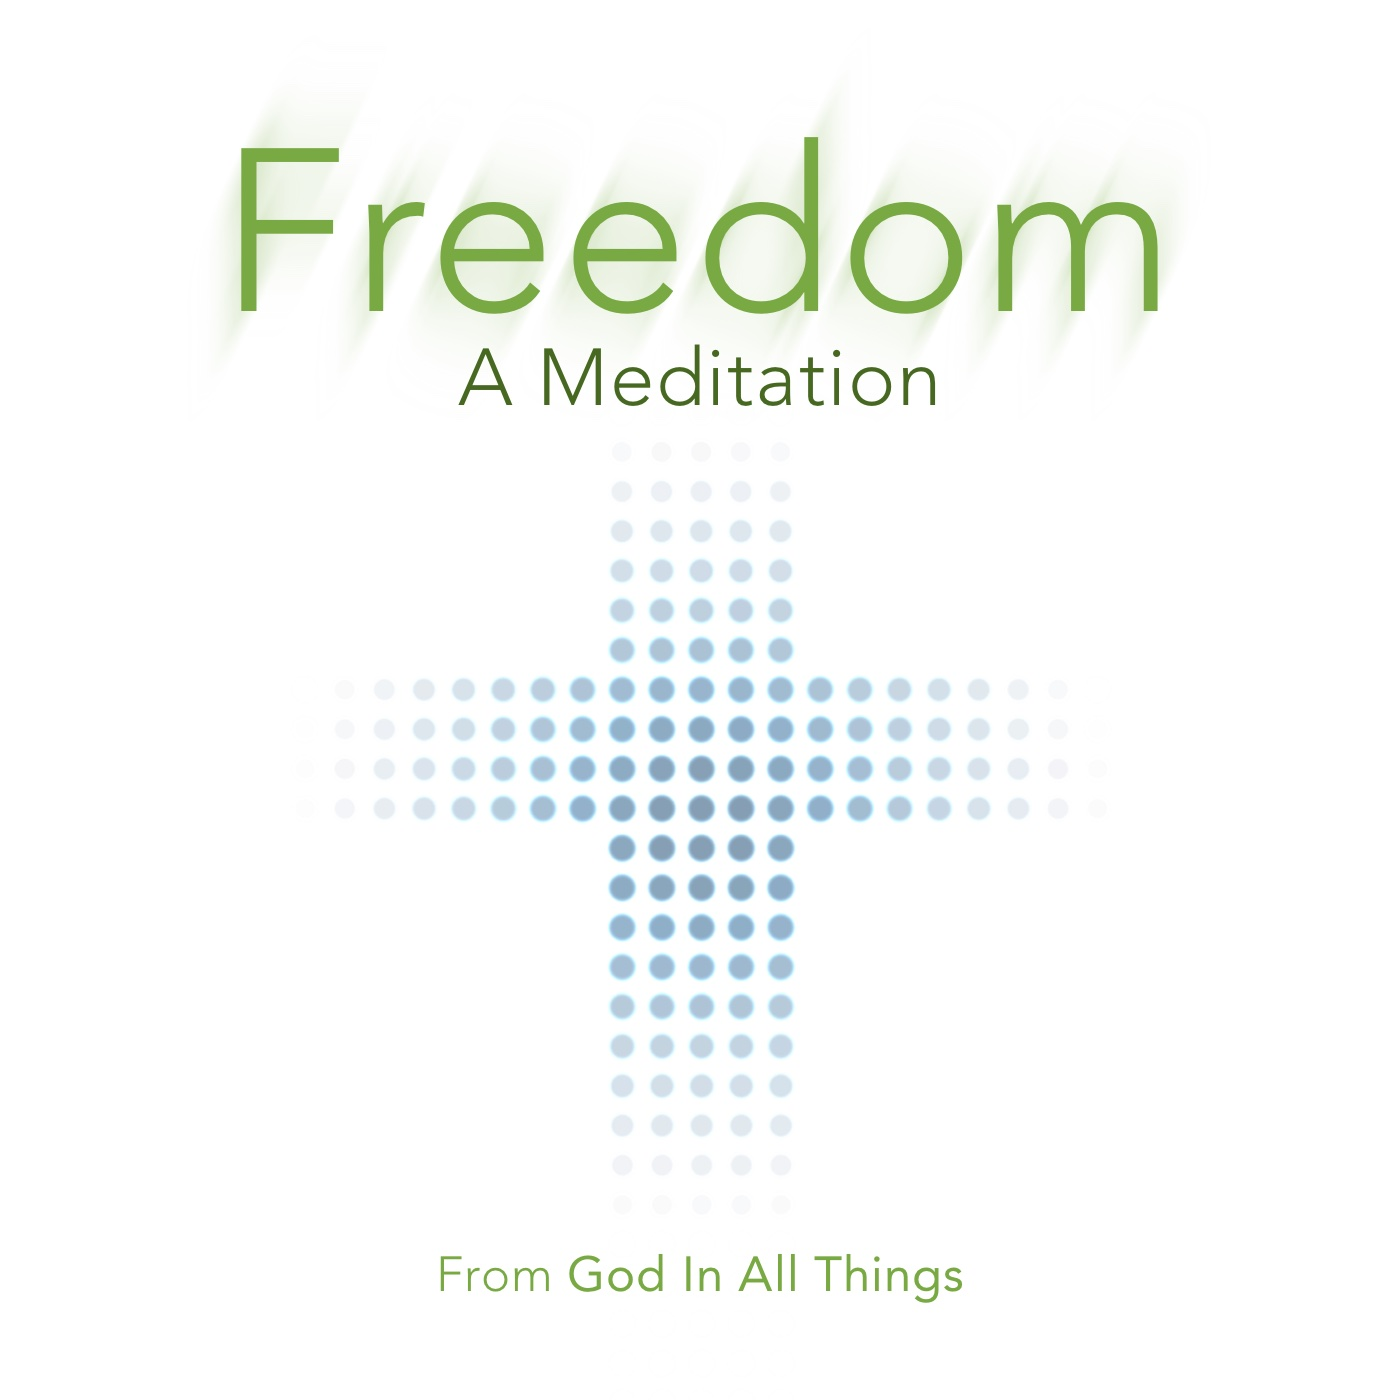 freedom-meditation-logo